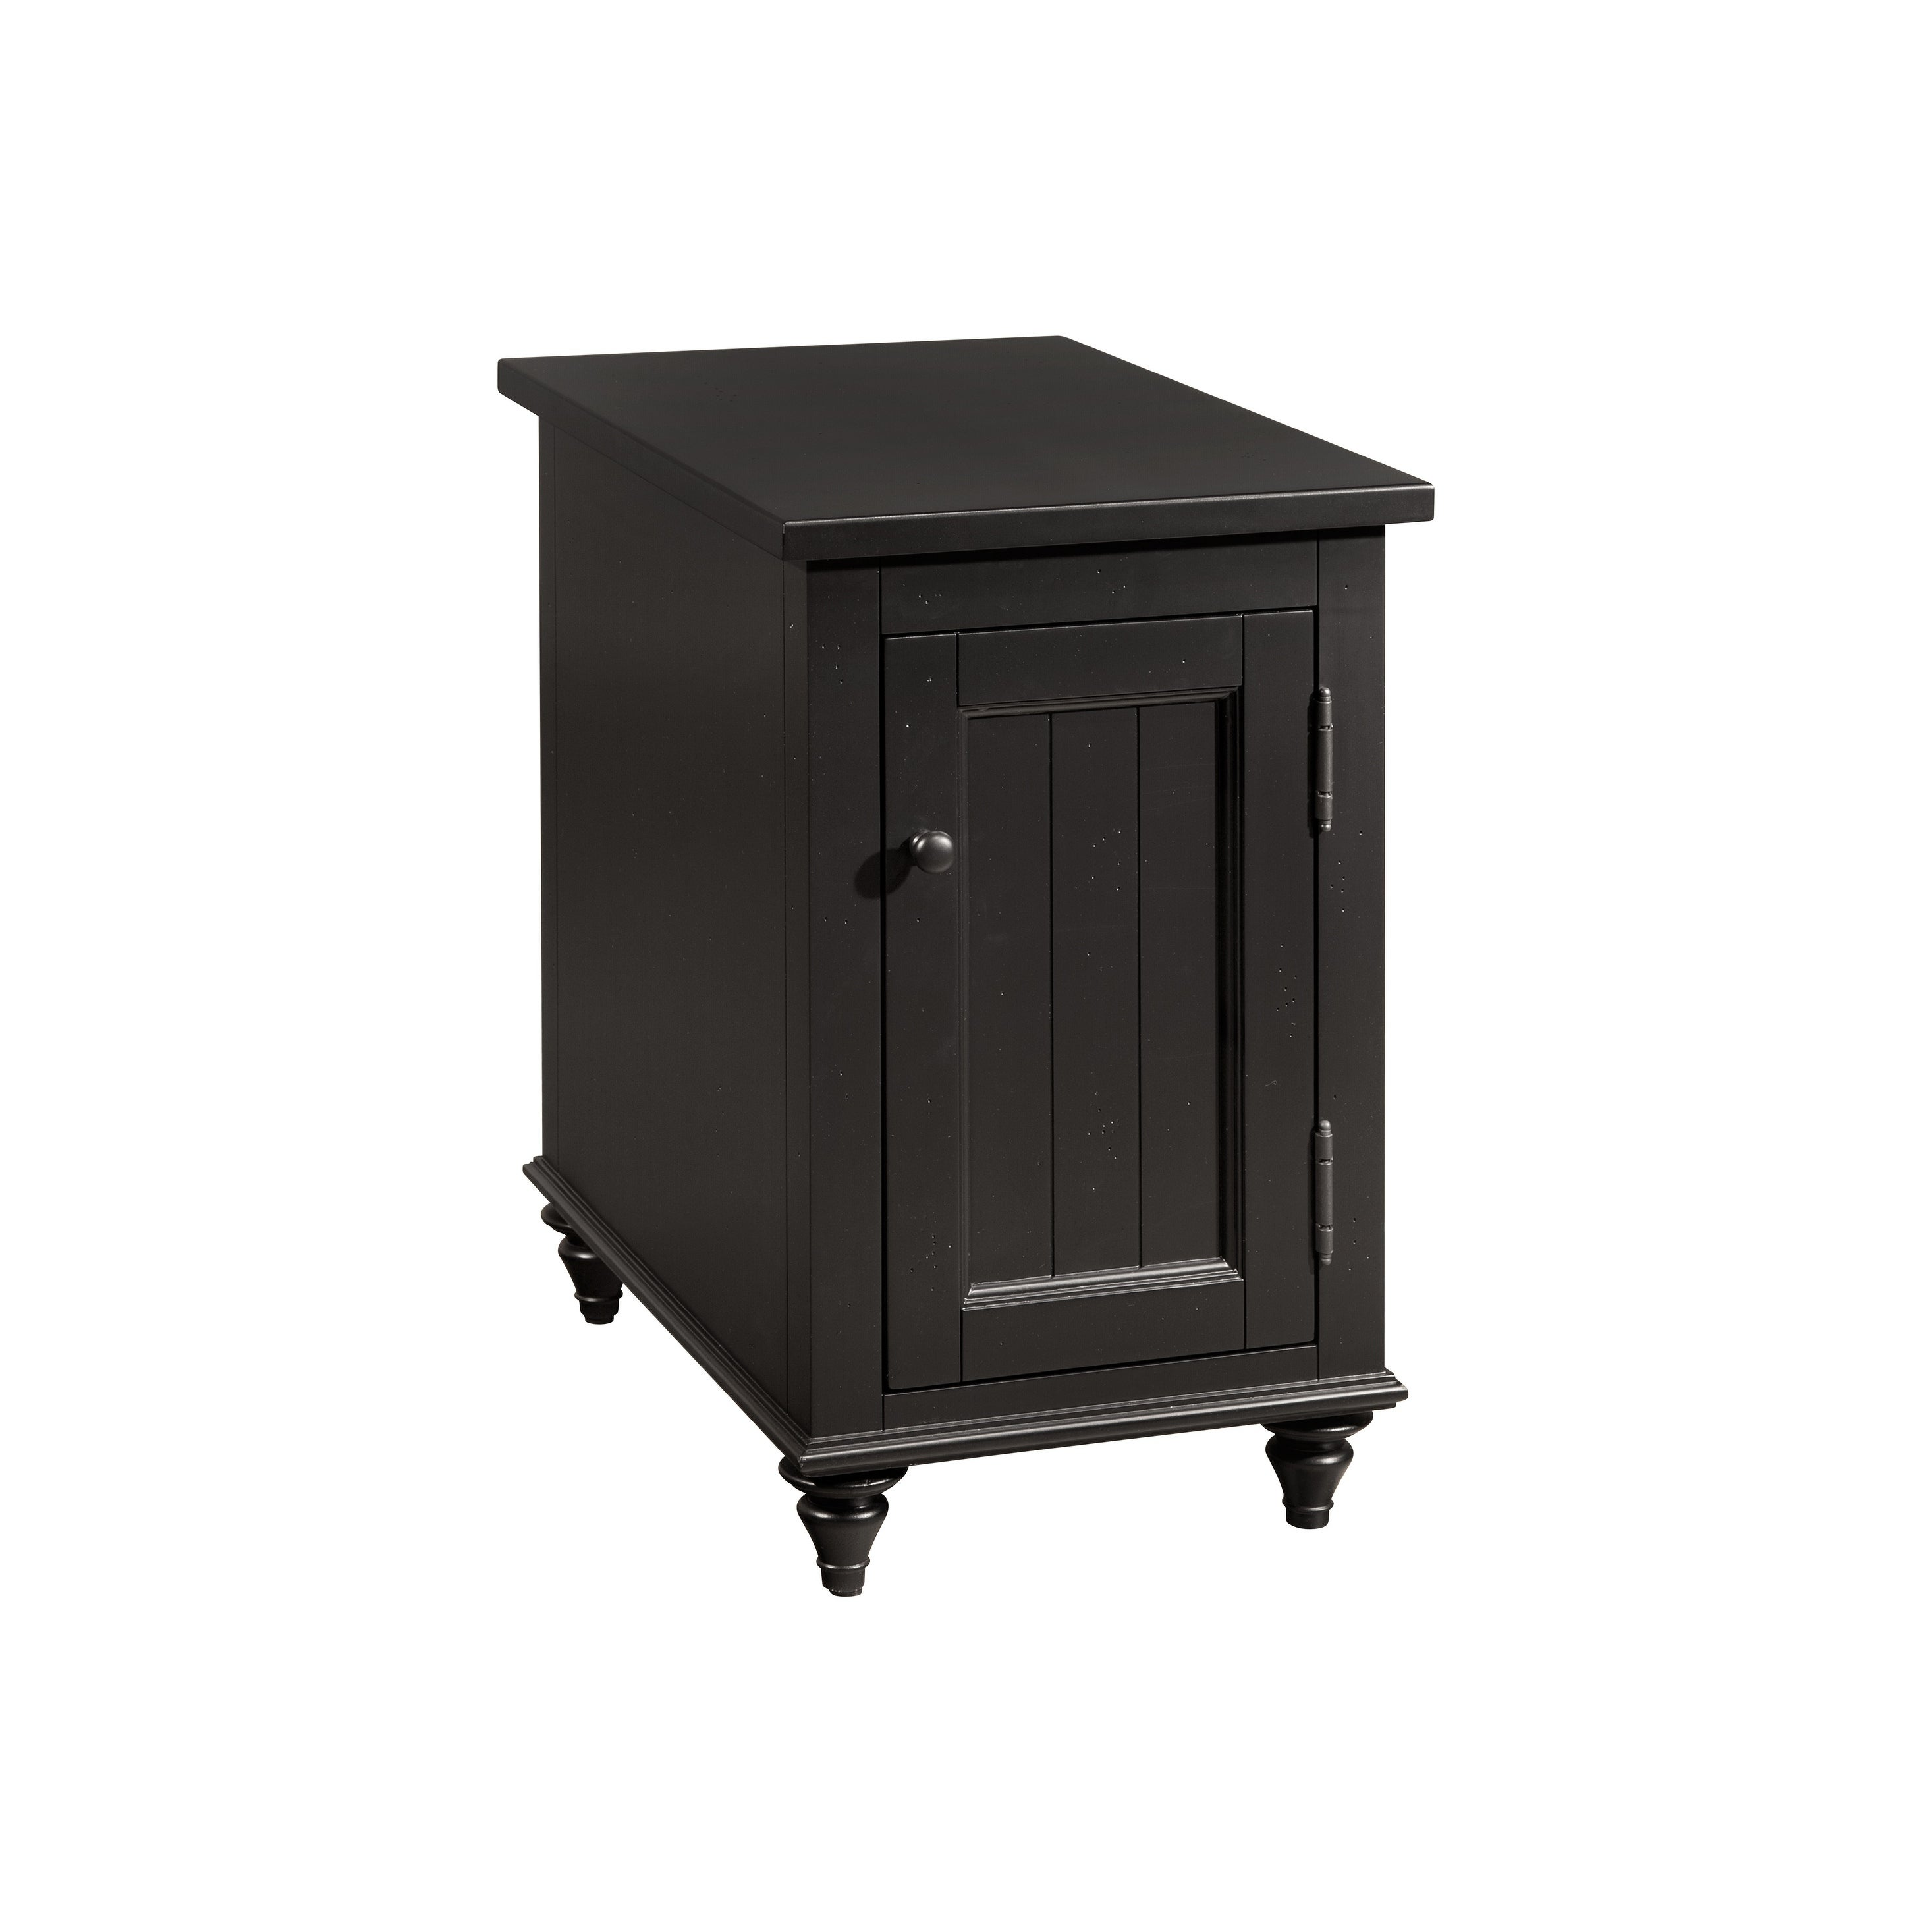 surprising Broyhillonline Part - 6: Buy End Tables Broyhill Online at Overstock.com | Our Best Living Room  Furniture Deals